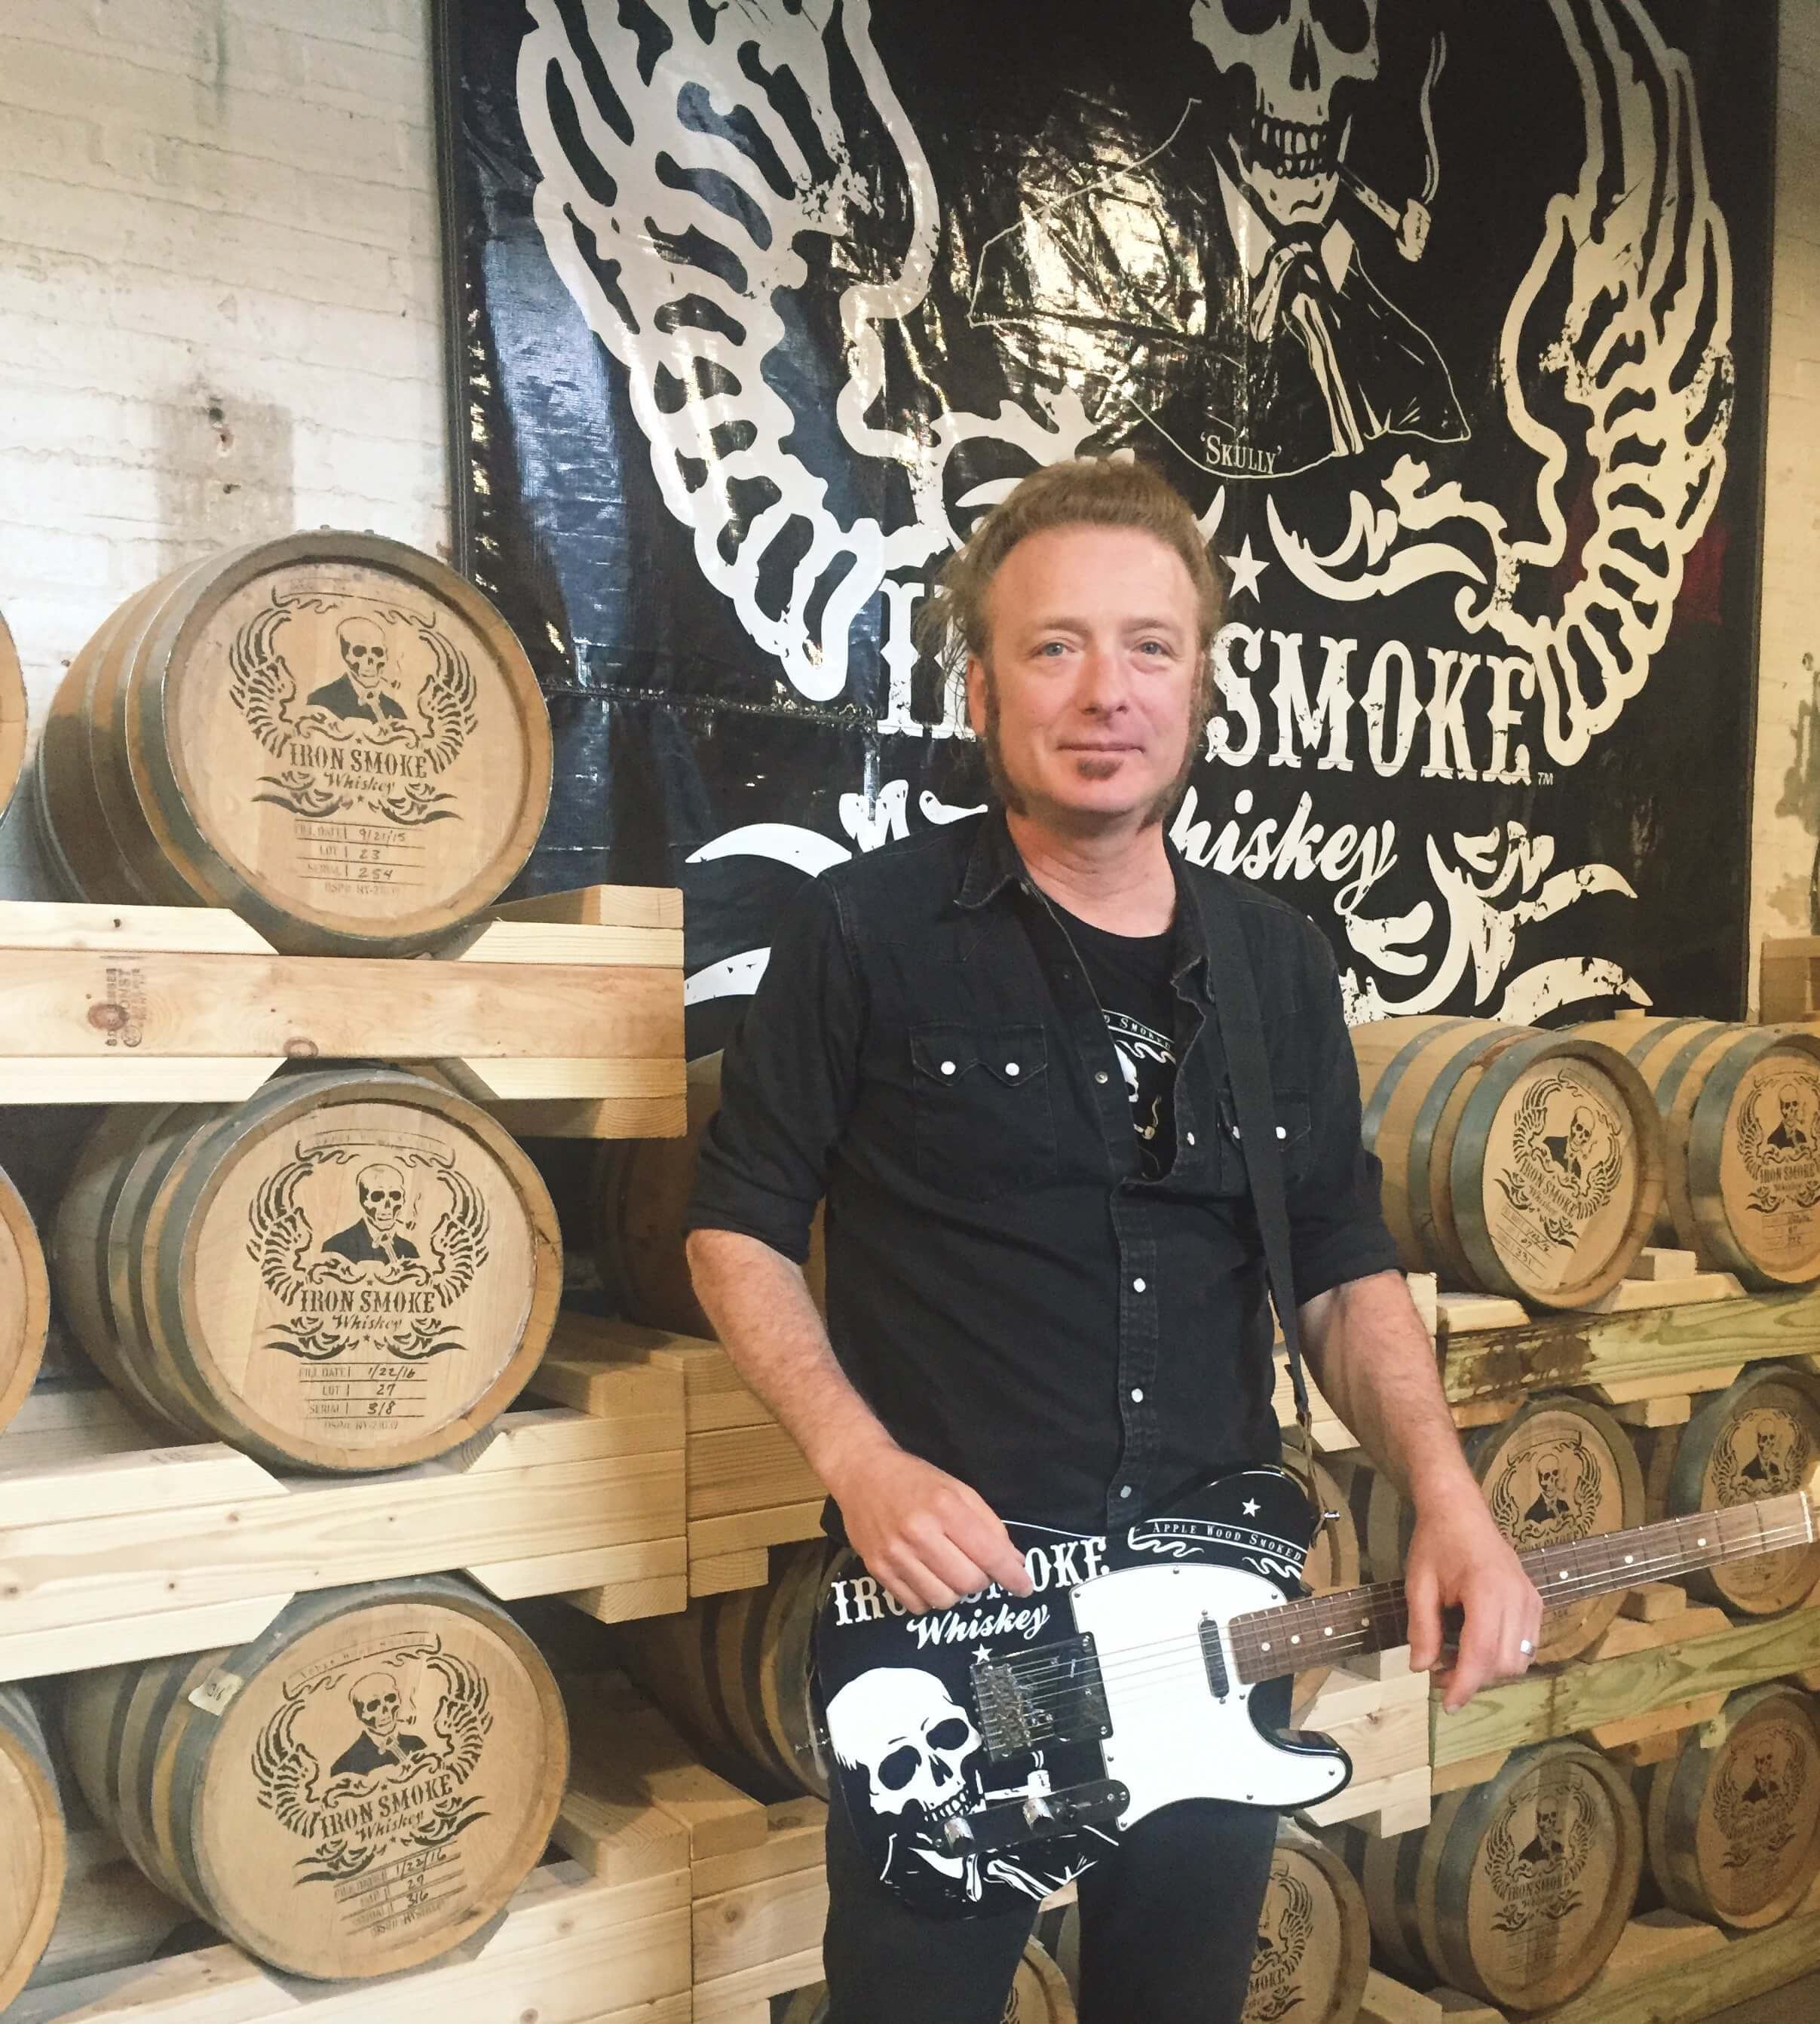 Iron Smoke Whiskey Founder Tommy Brunett is excited about creating jobs in Rochester and (of course) making whiskey.